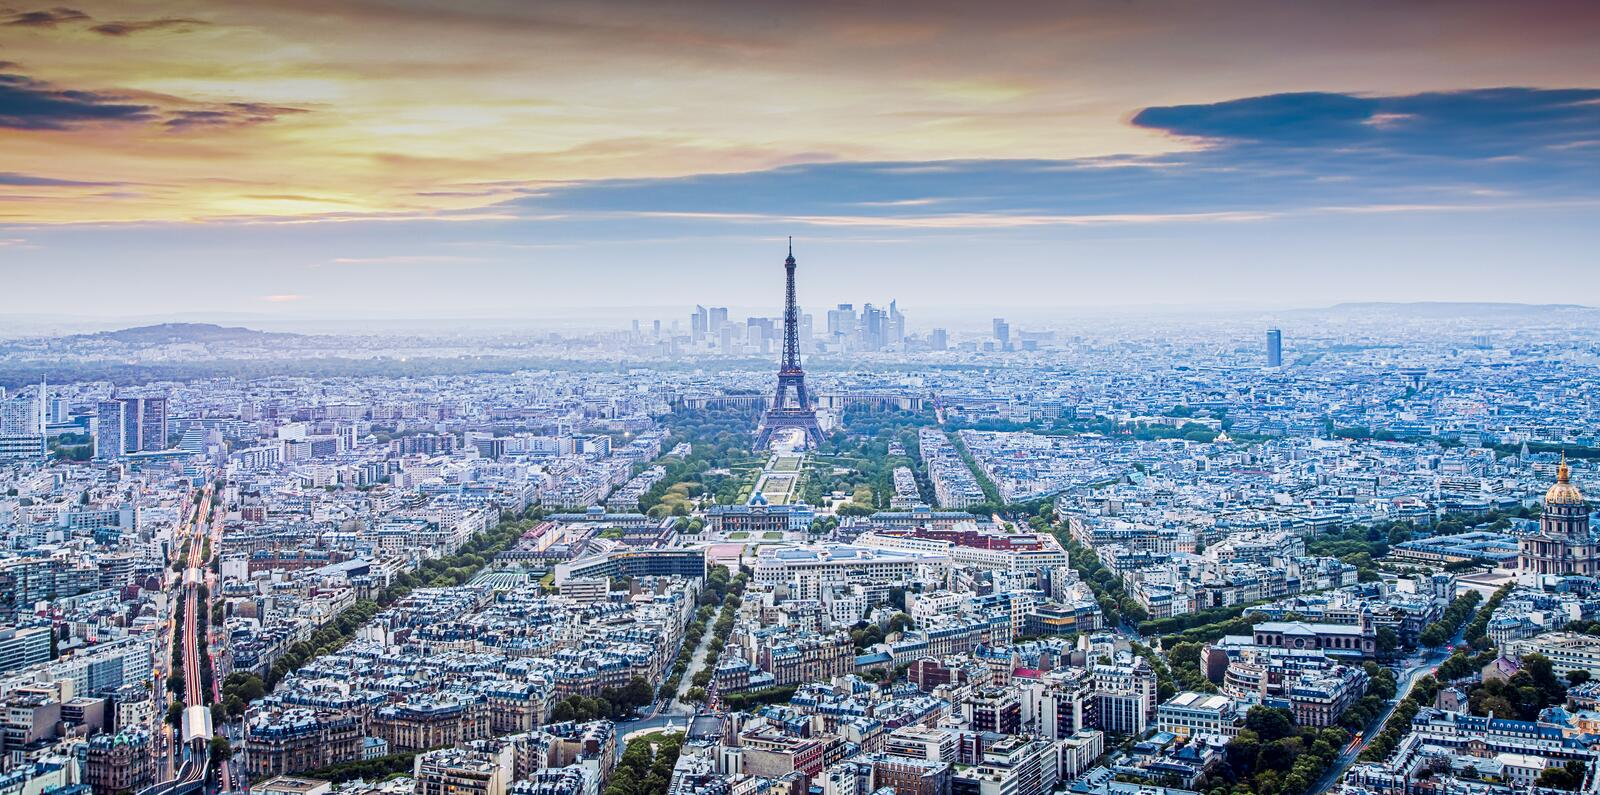 aerial view over Paris at sunset with iconic Eiffel tower royalty free stock photos